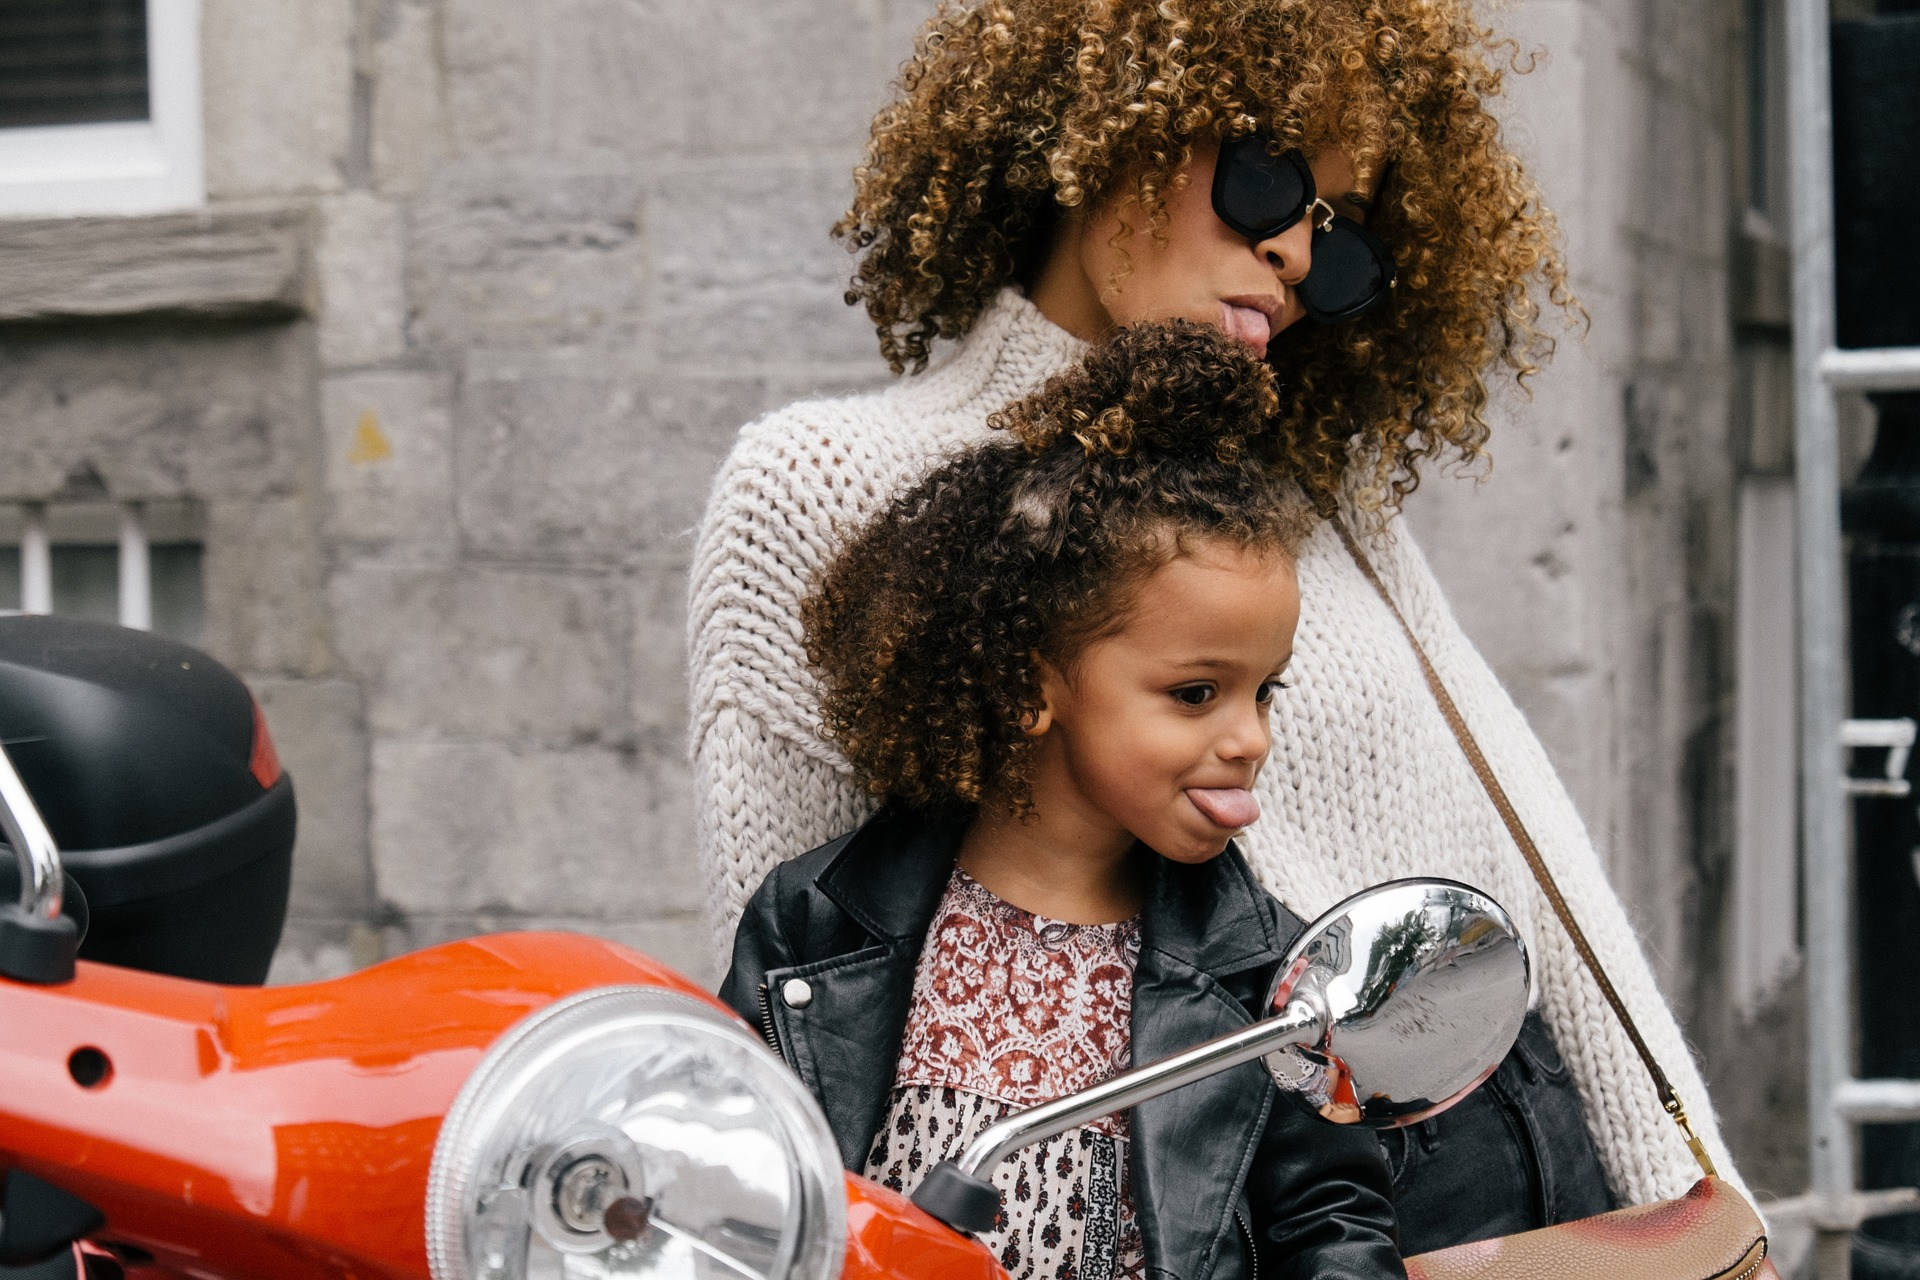 Six Things SMART MOMS Know